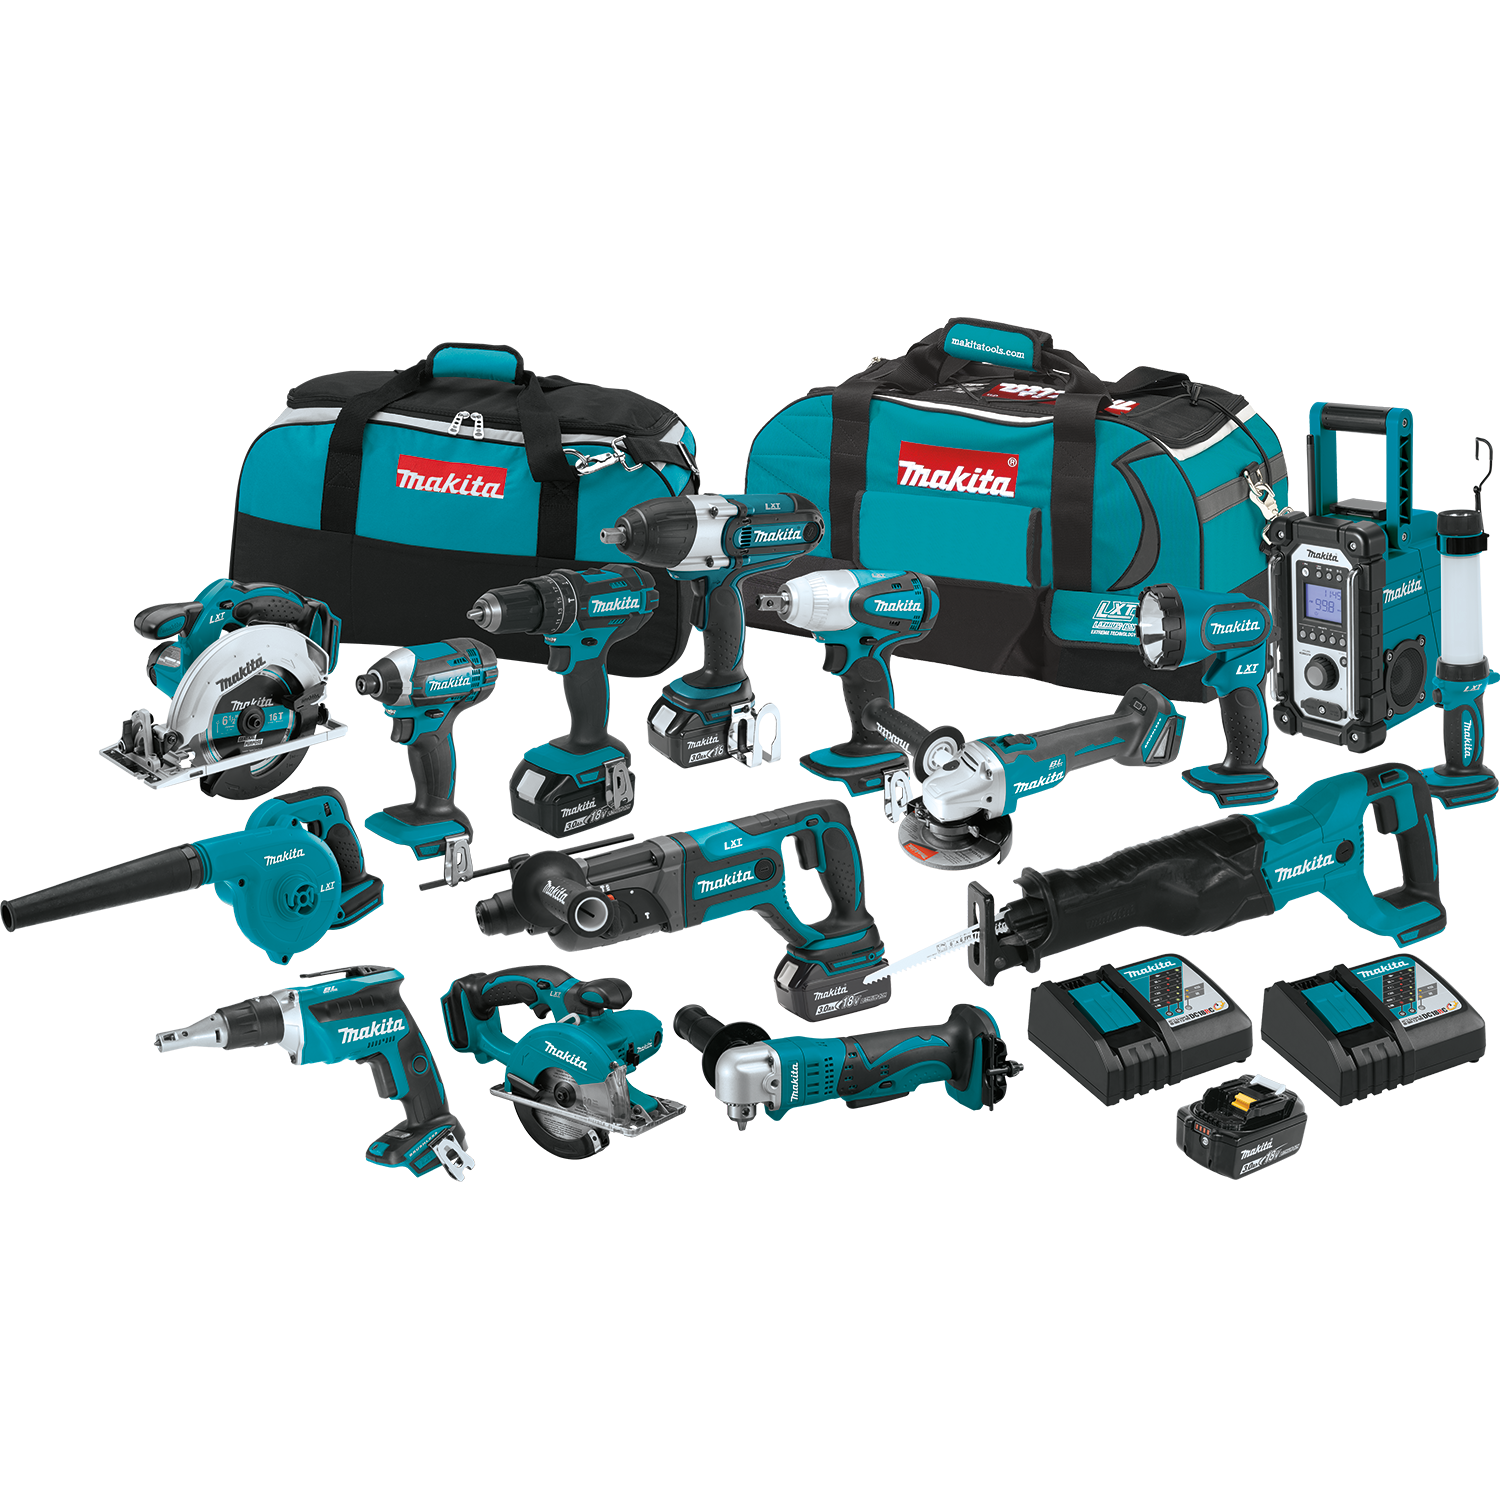 2019 New Sales Offer For-Makita Cordless Tool Kit 18 Volt 15 Pc Piece Lithium Ion Combo